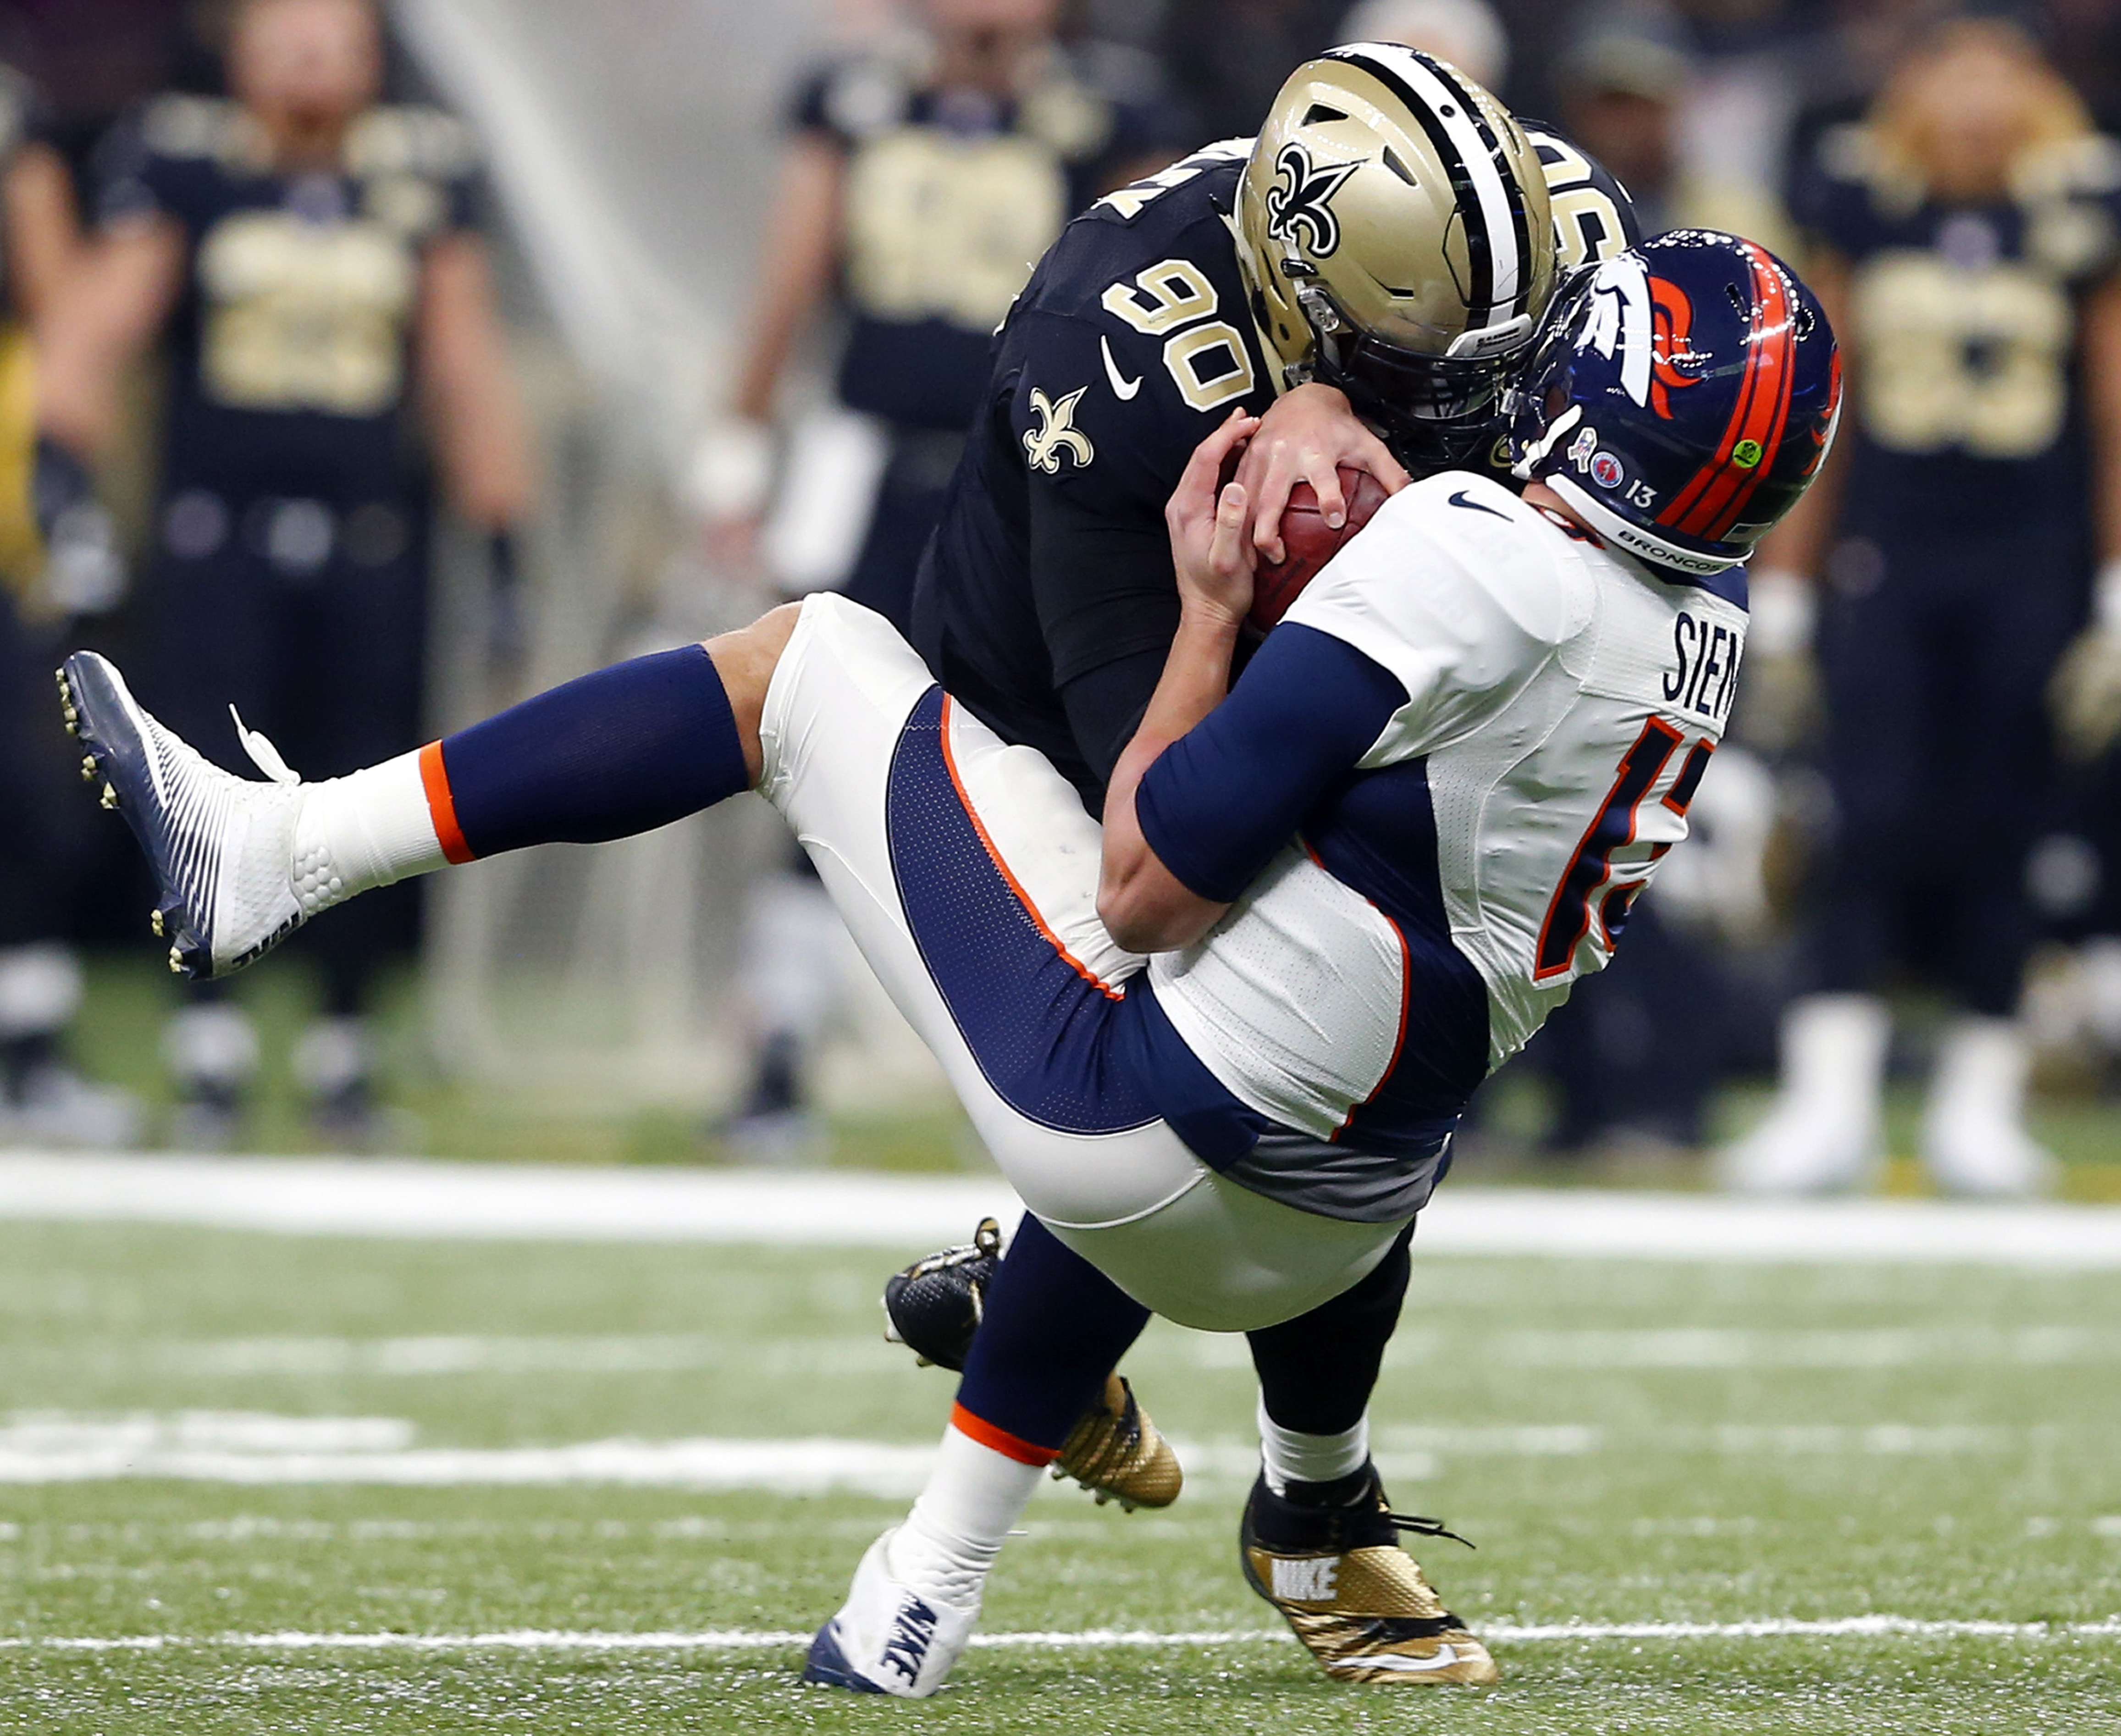 Denver Broncos quarterback Trevor Siemian (13) is sacked by New Orleans Saints defensive tackle Nick Fairley (90) in the first half of an NFL football game in New Orleans, Sunday, Nov. 13, 2016. (AP Photo/Butch Dill)